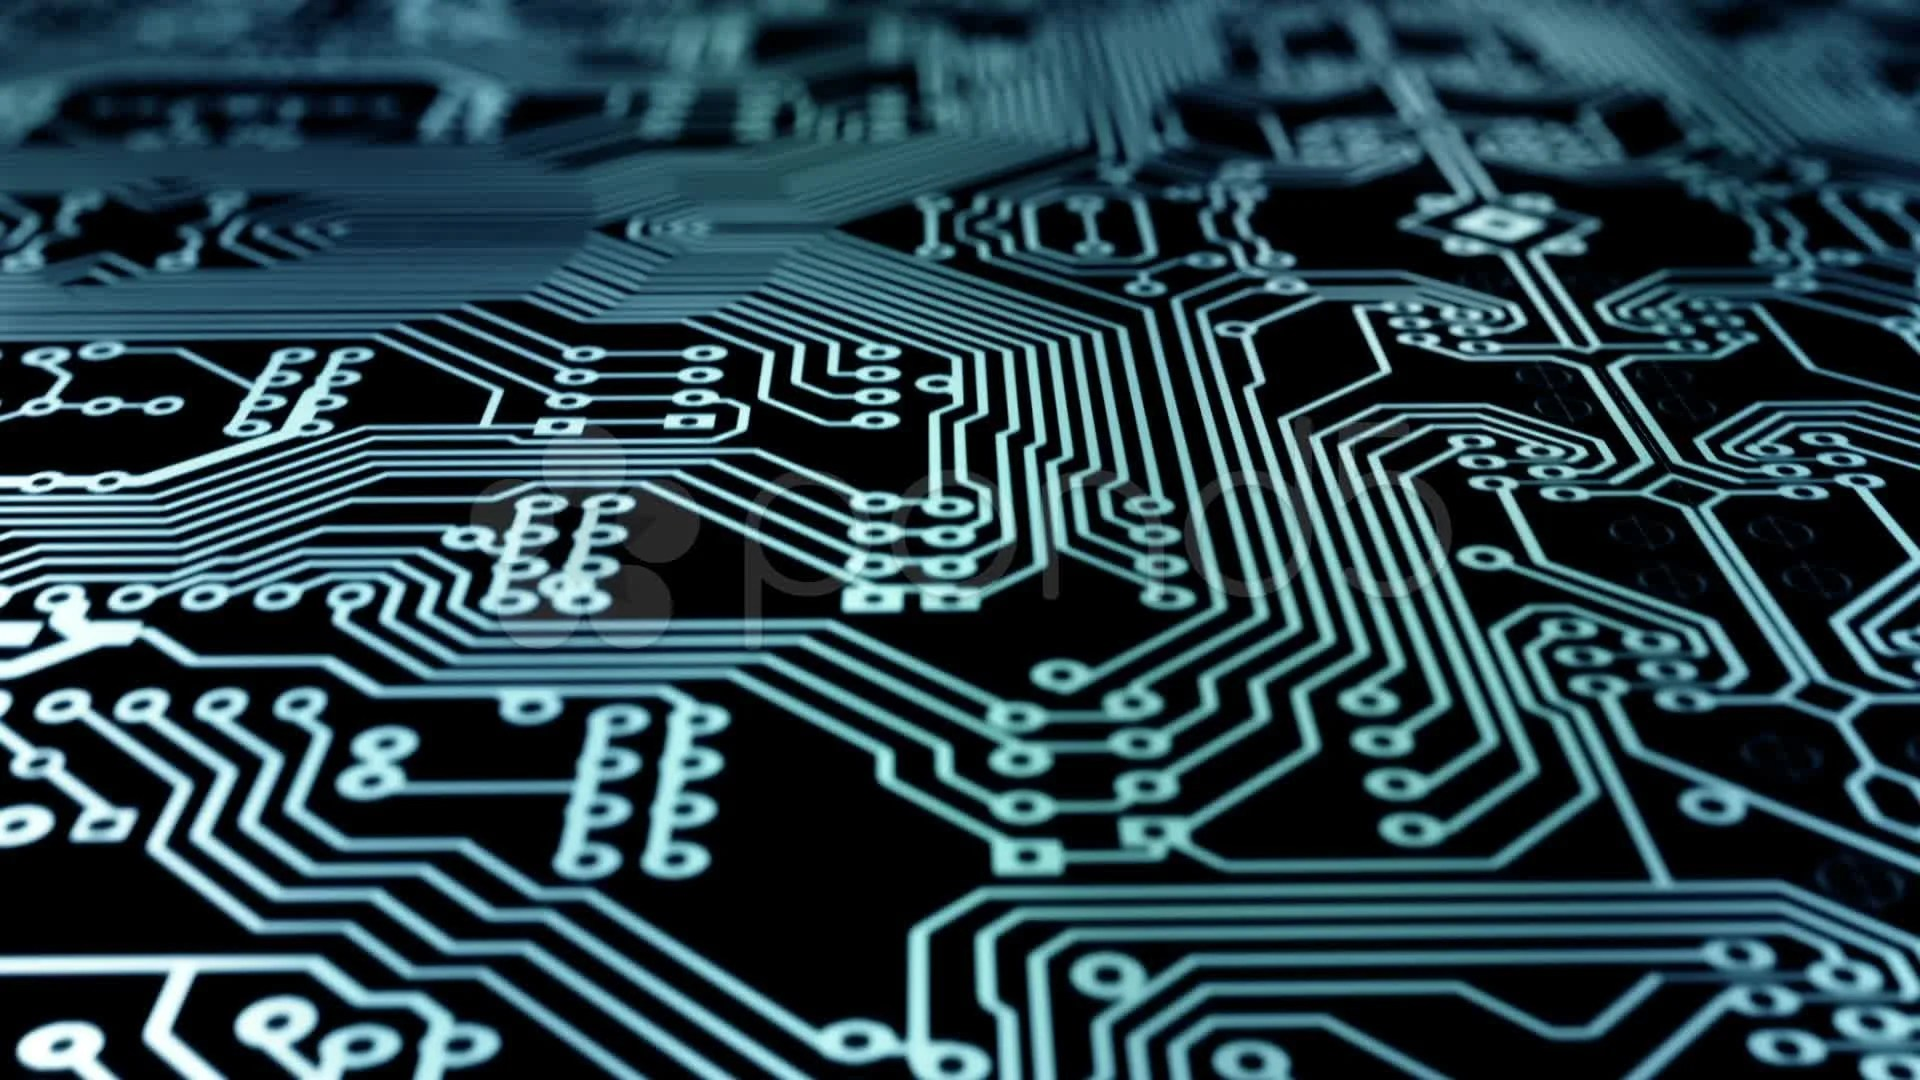 3d Server Wallpaper Pcb Background Loopable Animation Stock Video 21518090